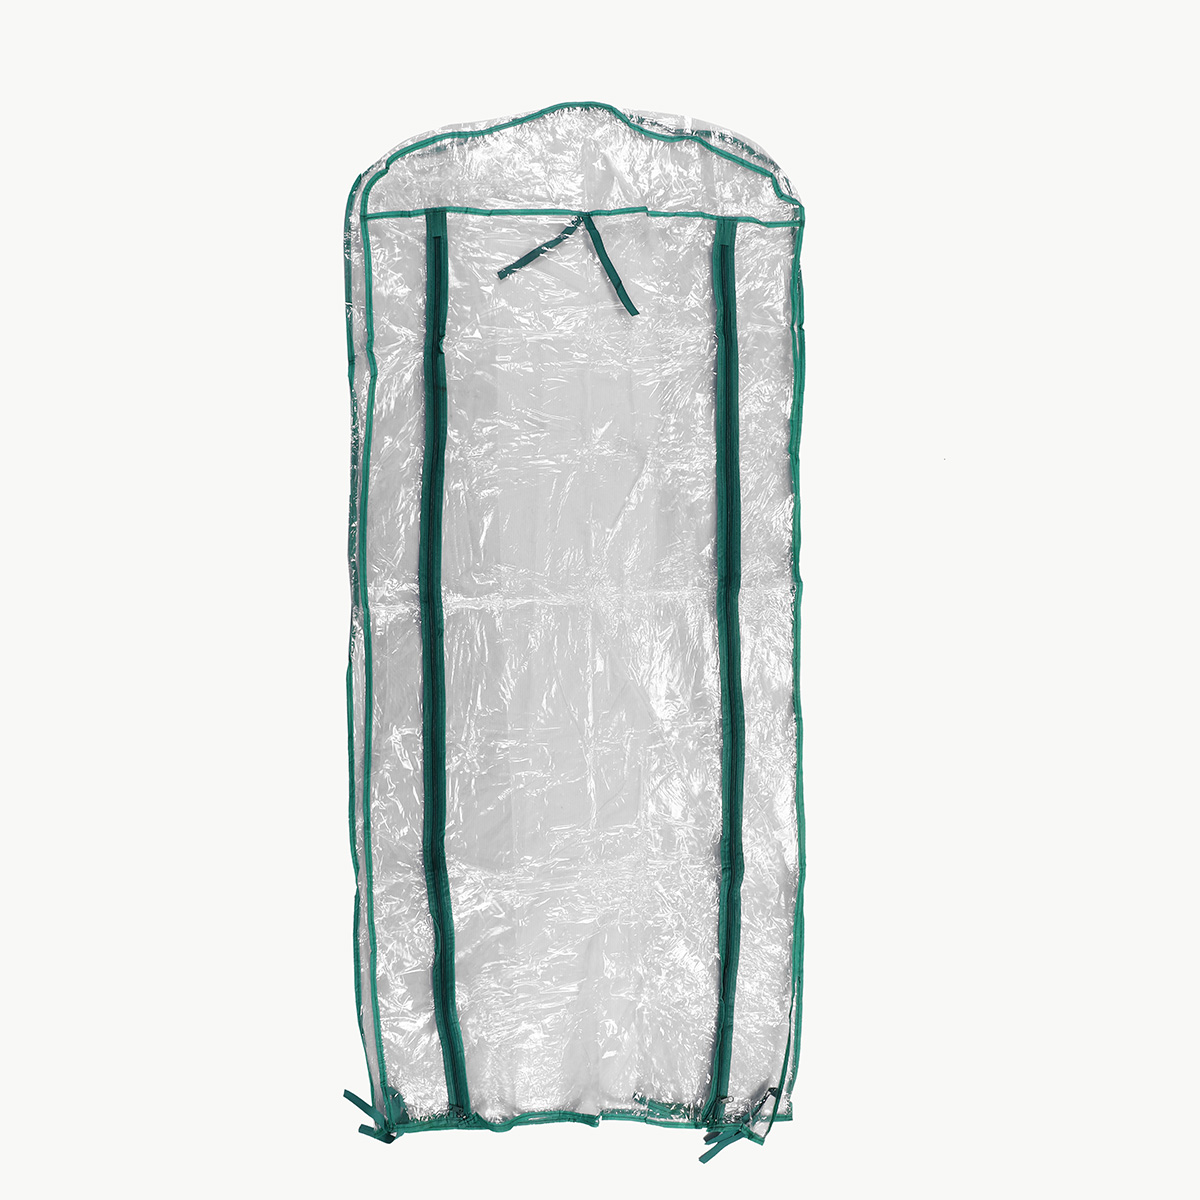 69×49×160cm Garden Green House Mini Portable Outdoor Warm Greenhouse Cover Flower Plants Gardening